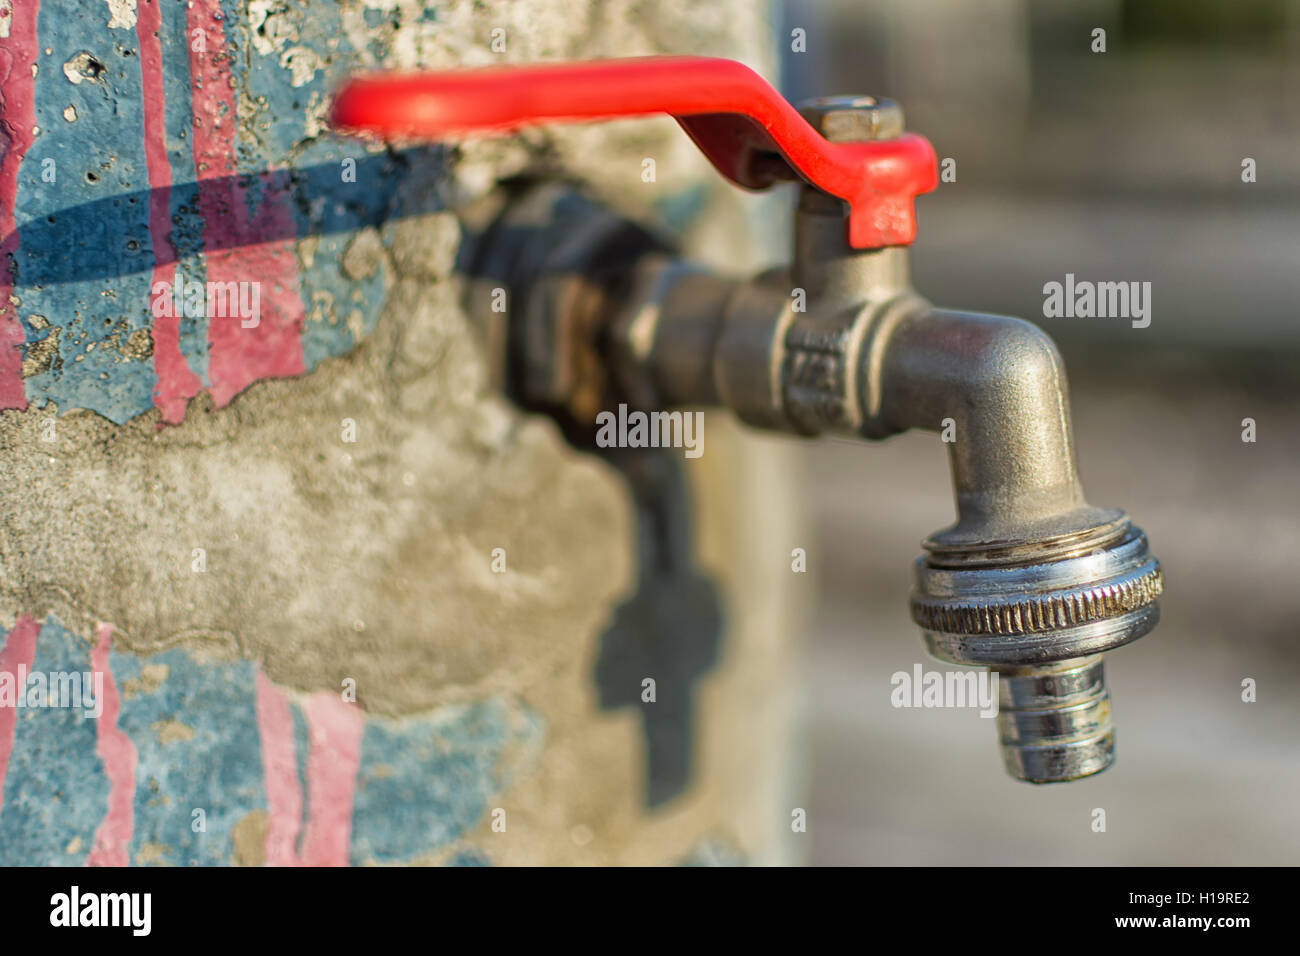 Faucet on Old Cracked Blue Painted Wall. Red Handle Water Tap Outdoor Background. Save Water Concept. - Stock Image